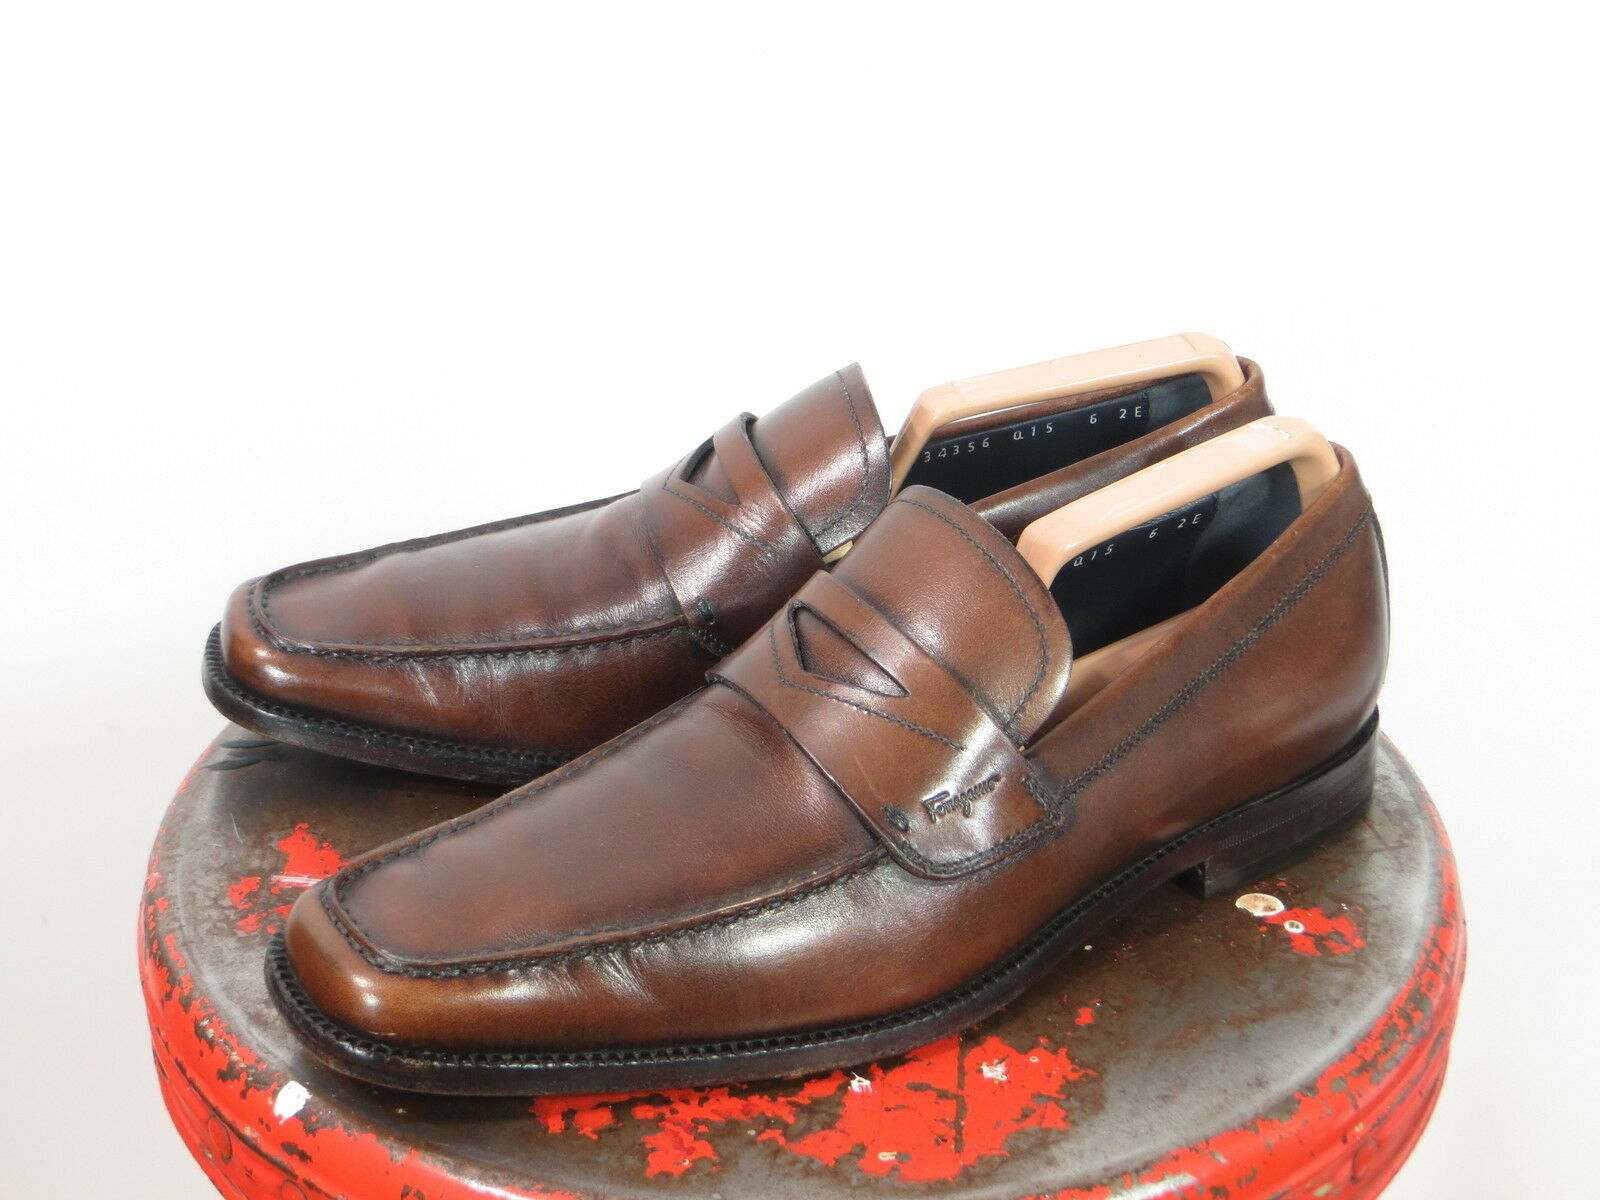 Salvatore Ferragamo    Braun penny loafers Herren dress schuhe 6 EE e6a7b9